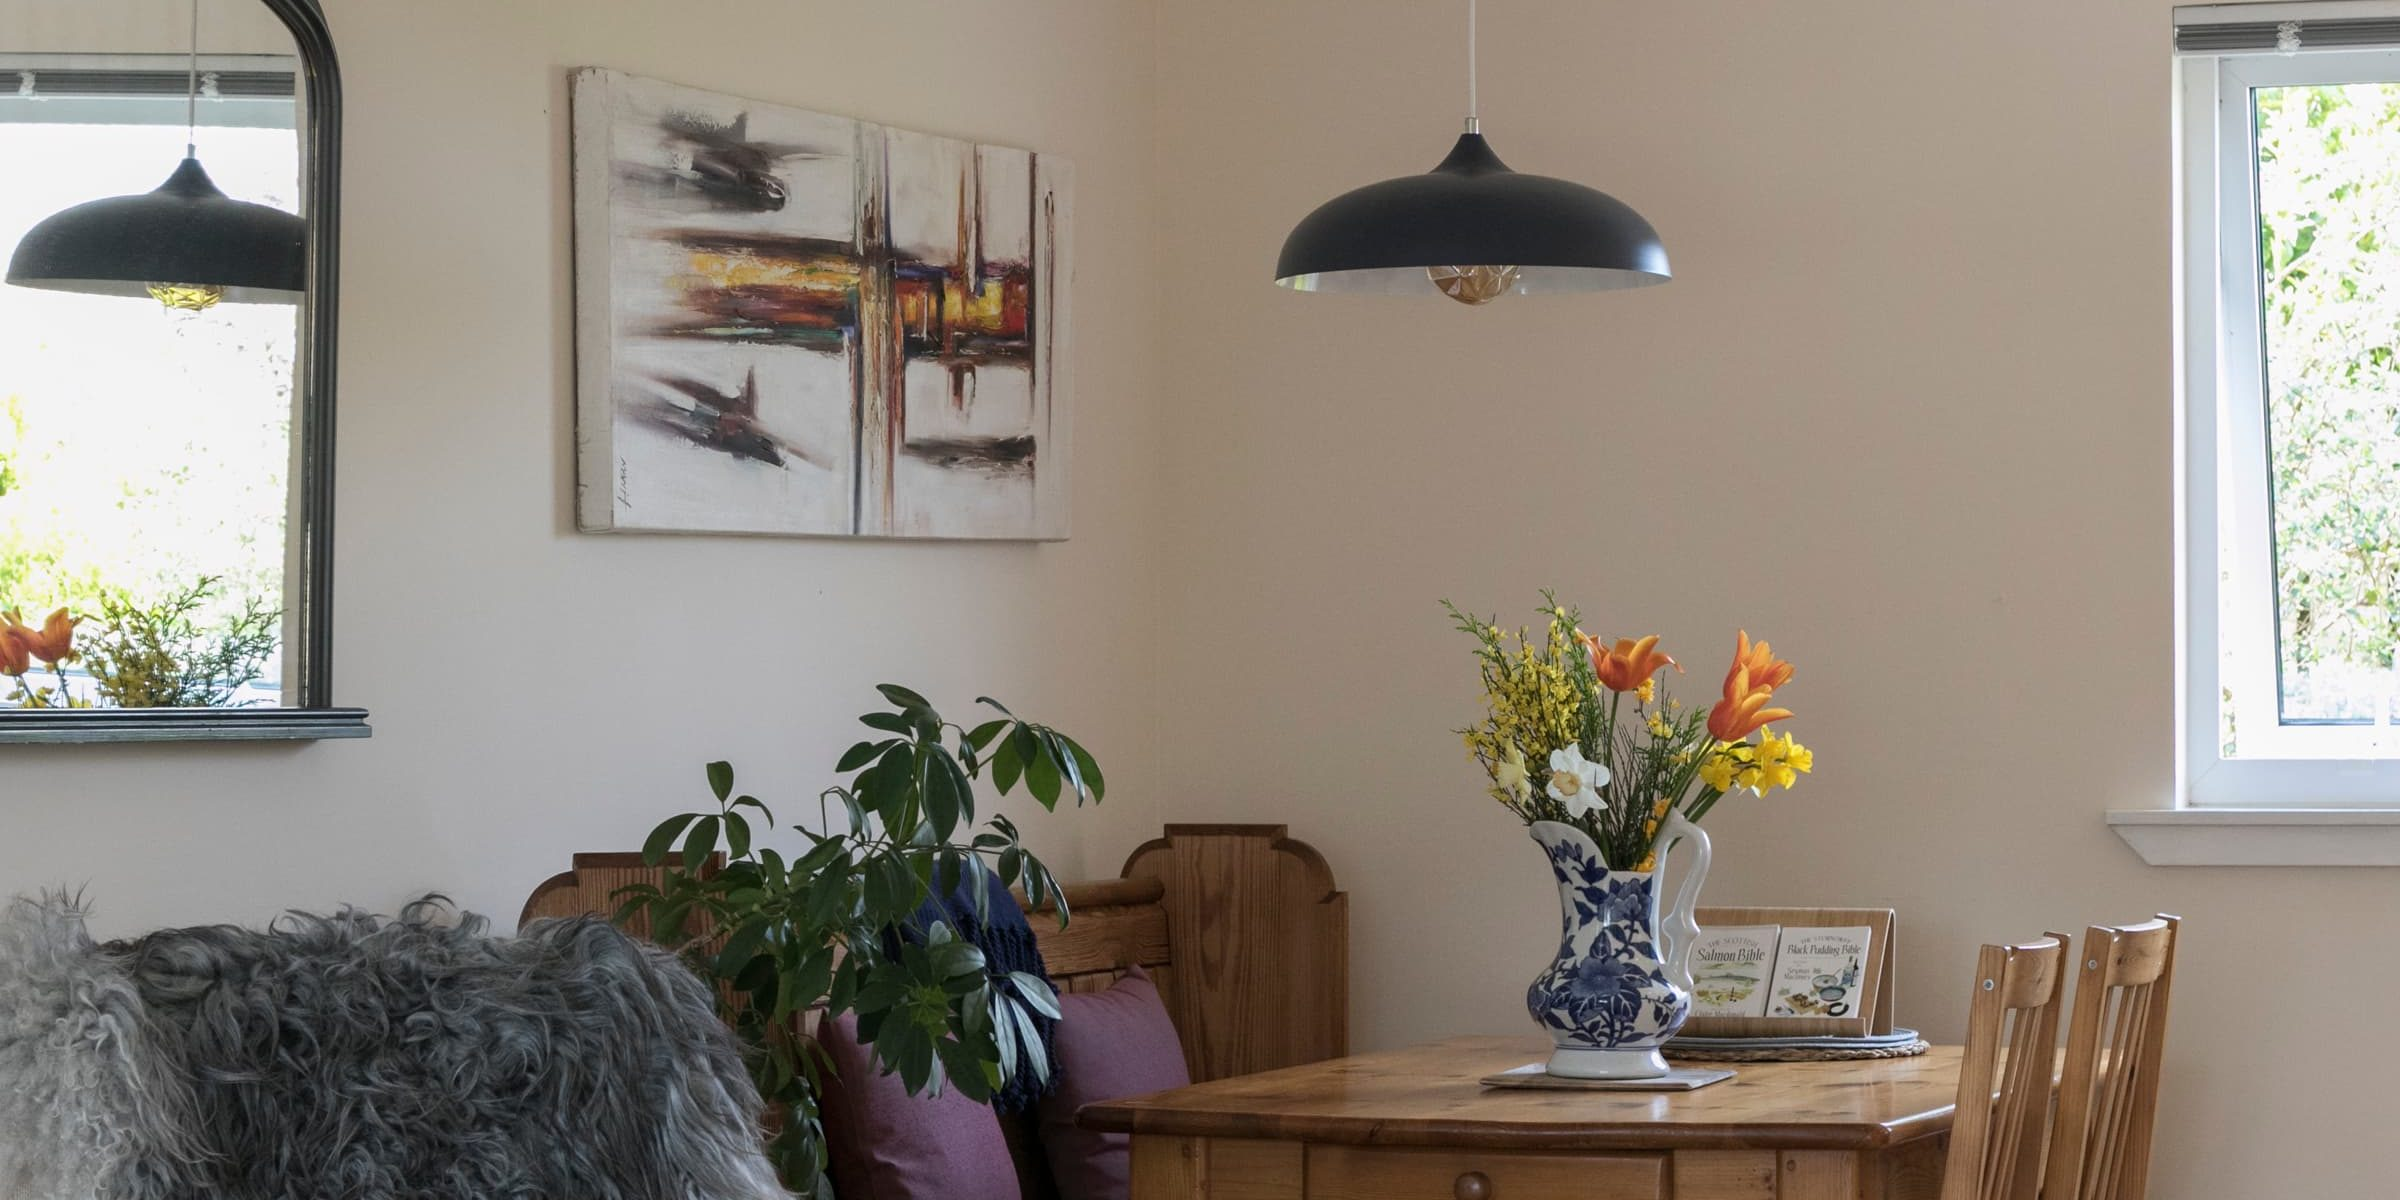 living room and dining area with sheep rug and flowers